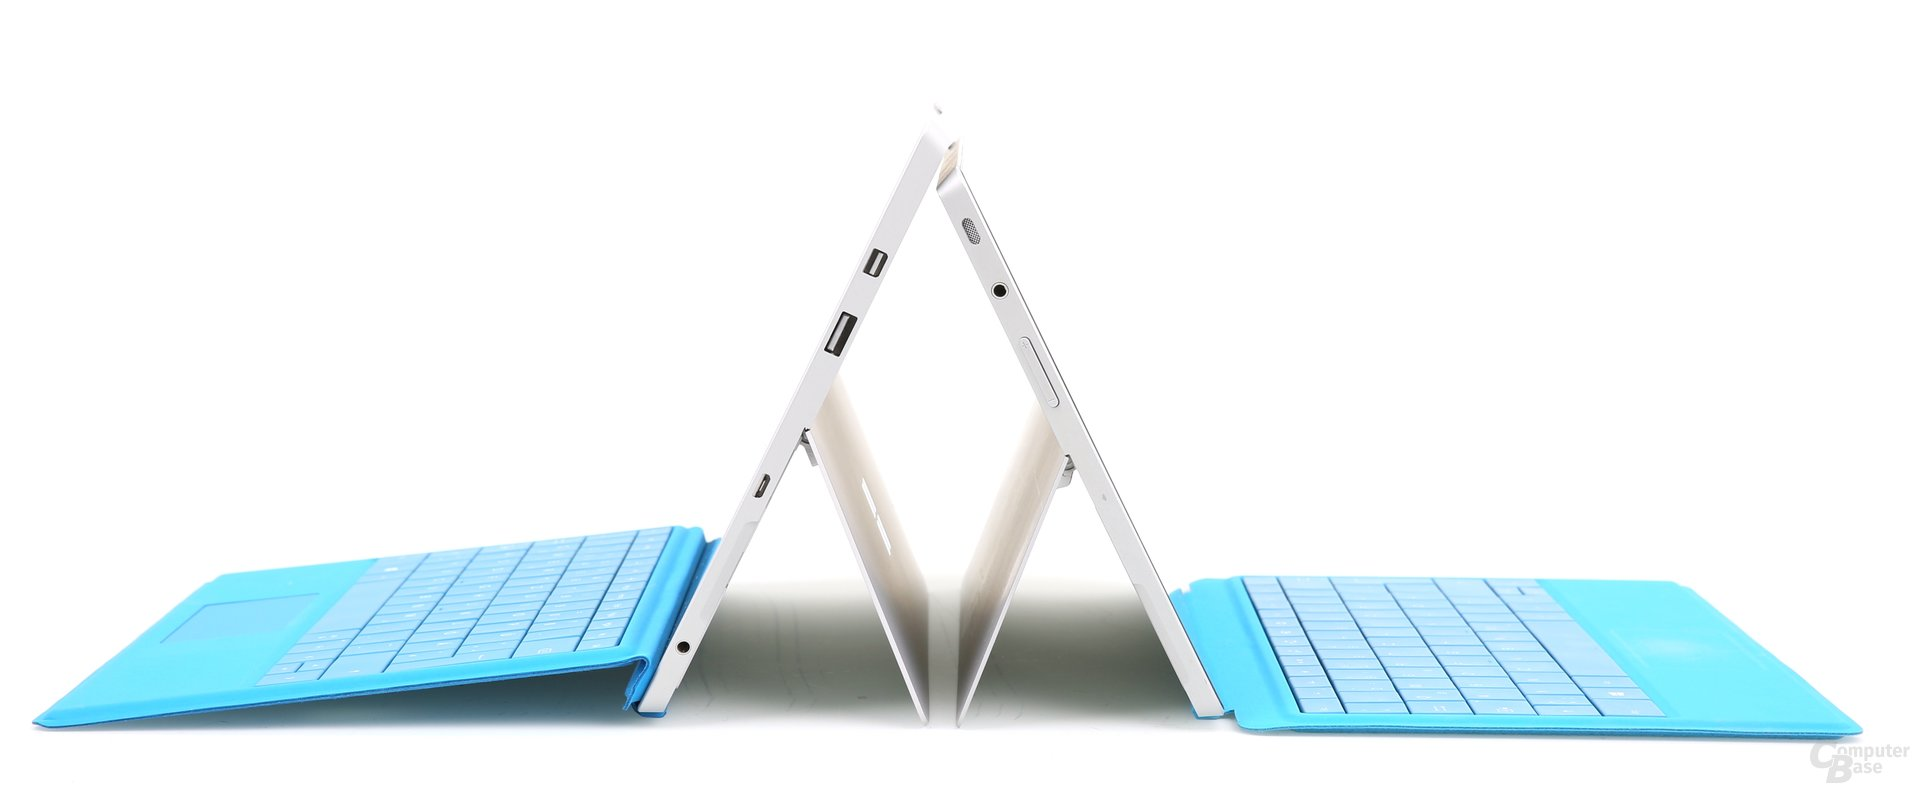 Surface 3 links und Surface 2 rechts